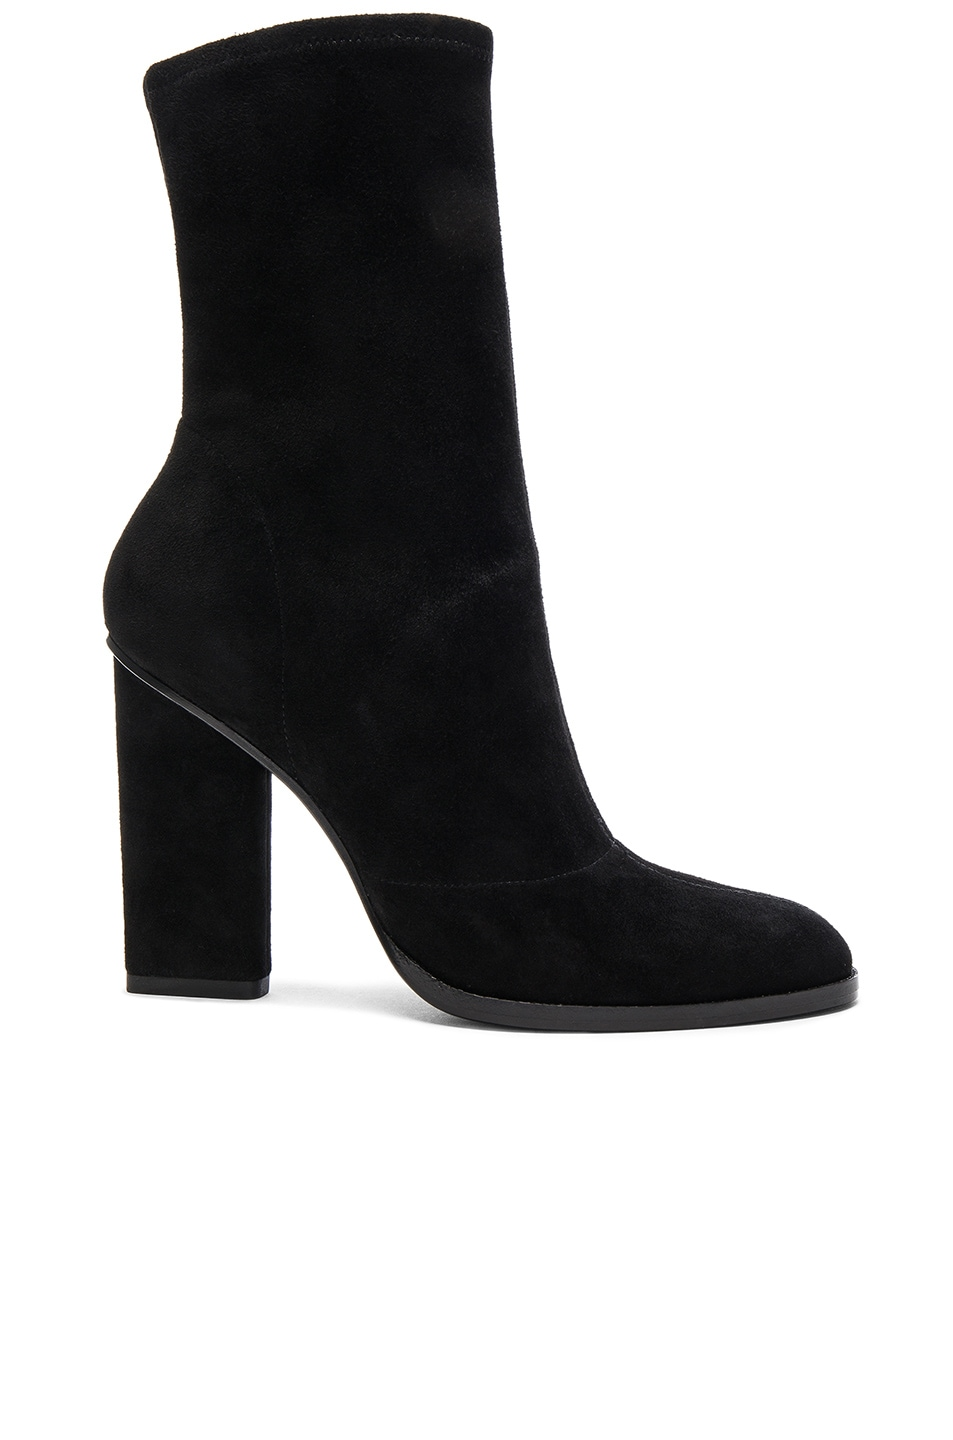 Image 1 of Alexander Wang Suede Gia Booties in Black